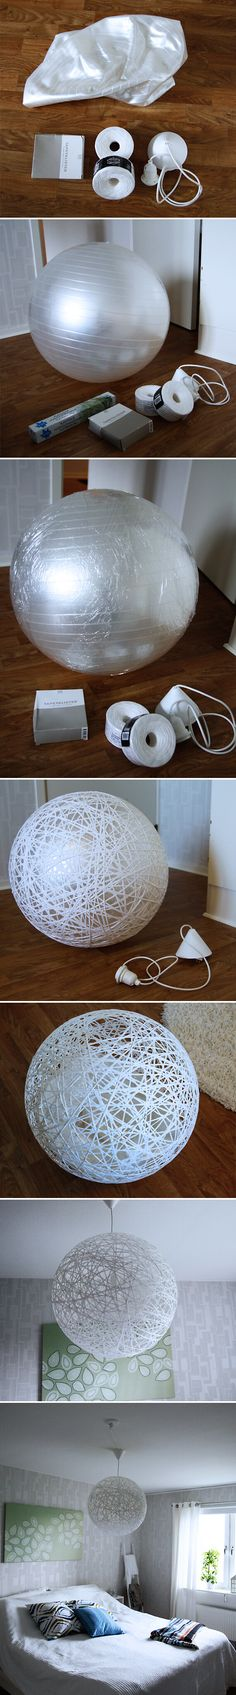 Adult DIY Projects I Want to Try!! - Princess Pinky Girl